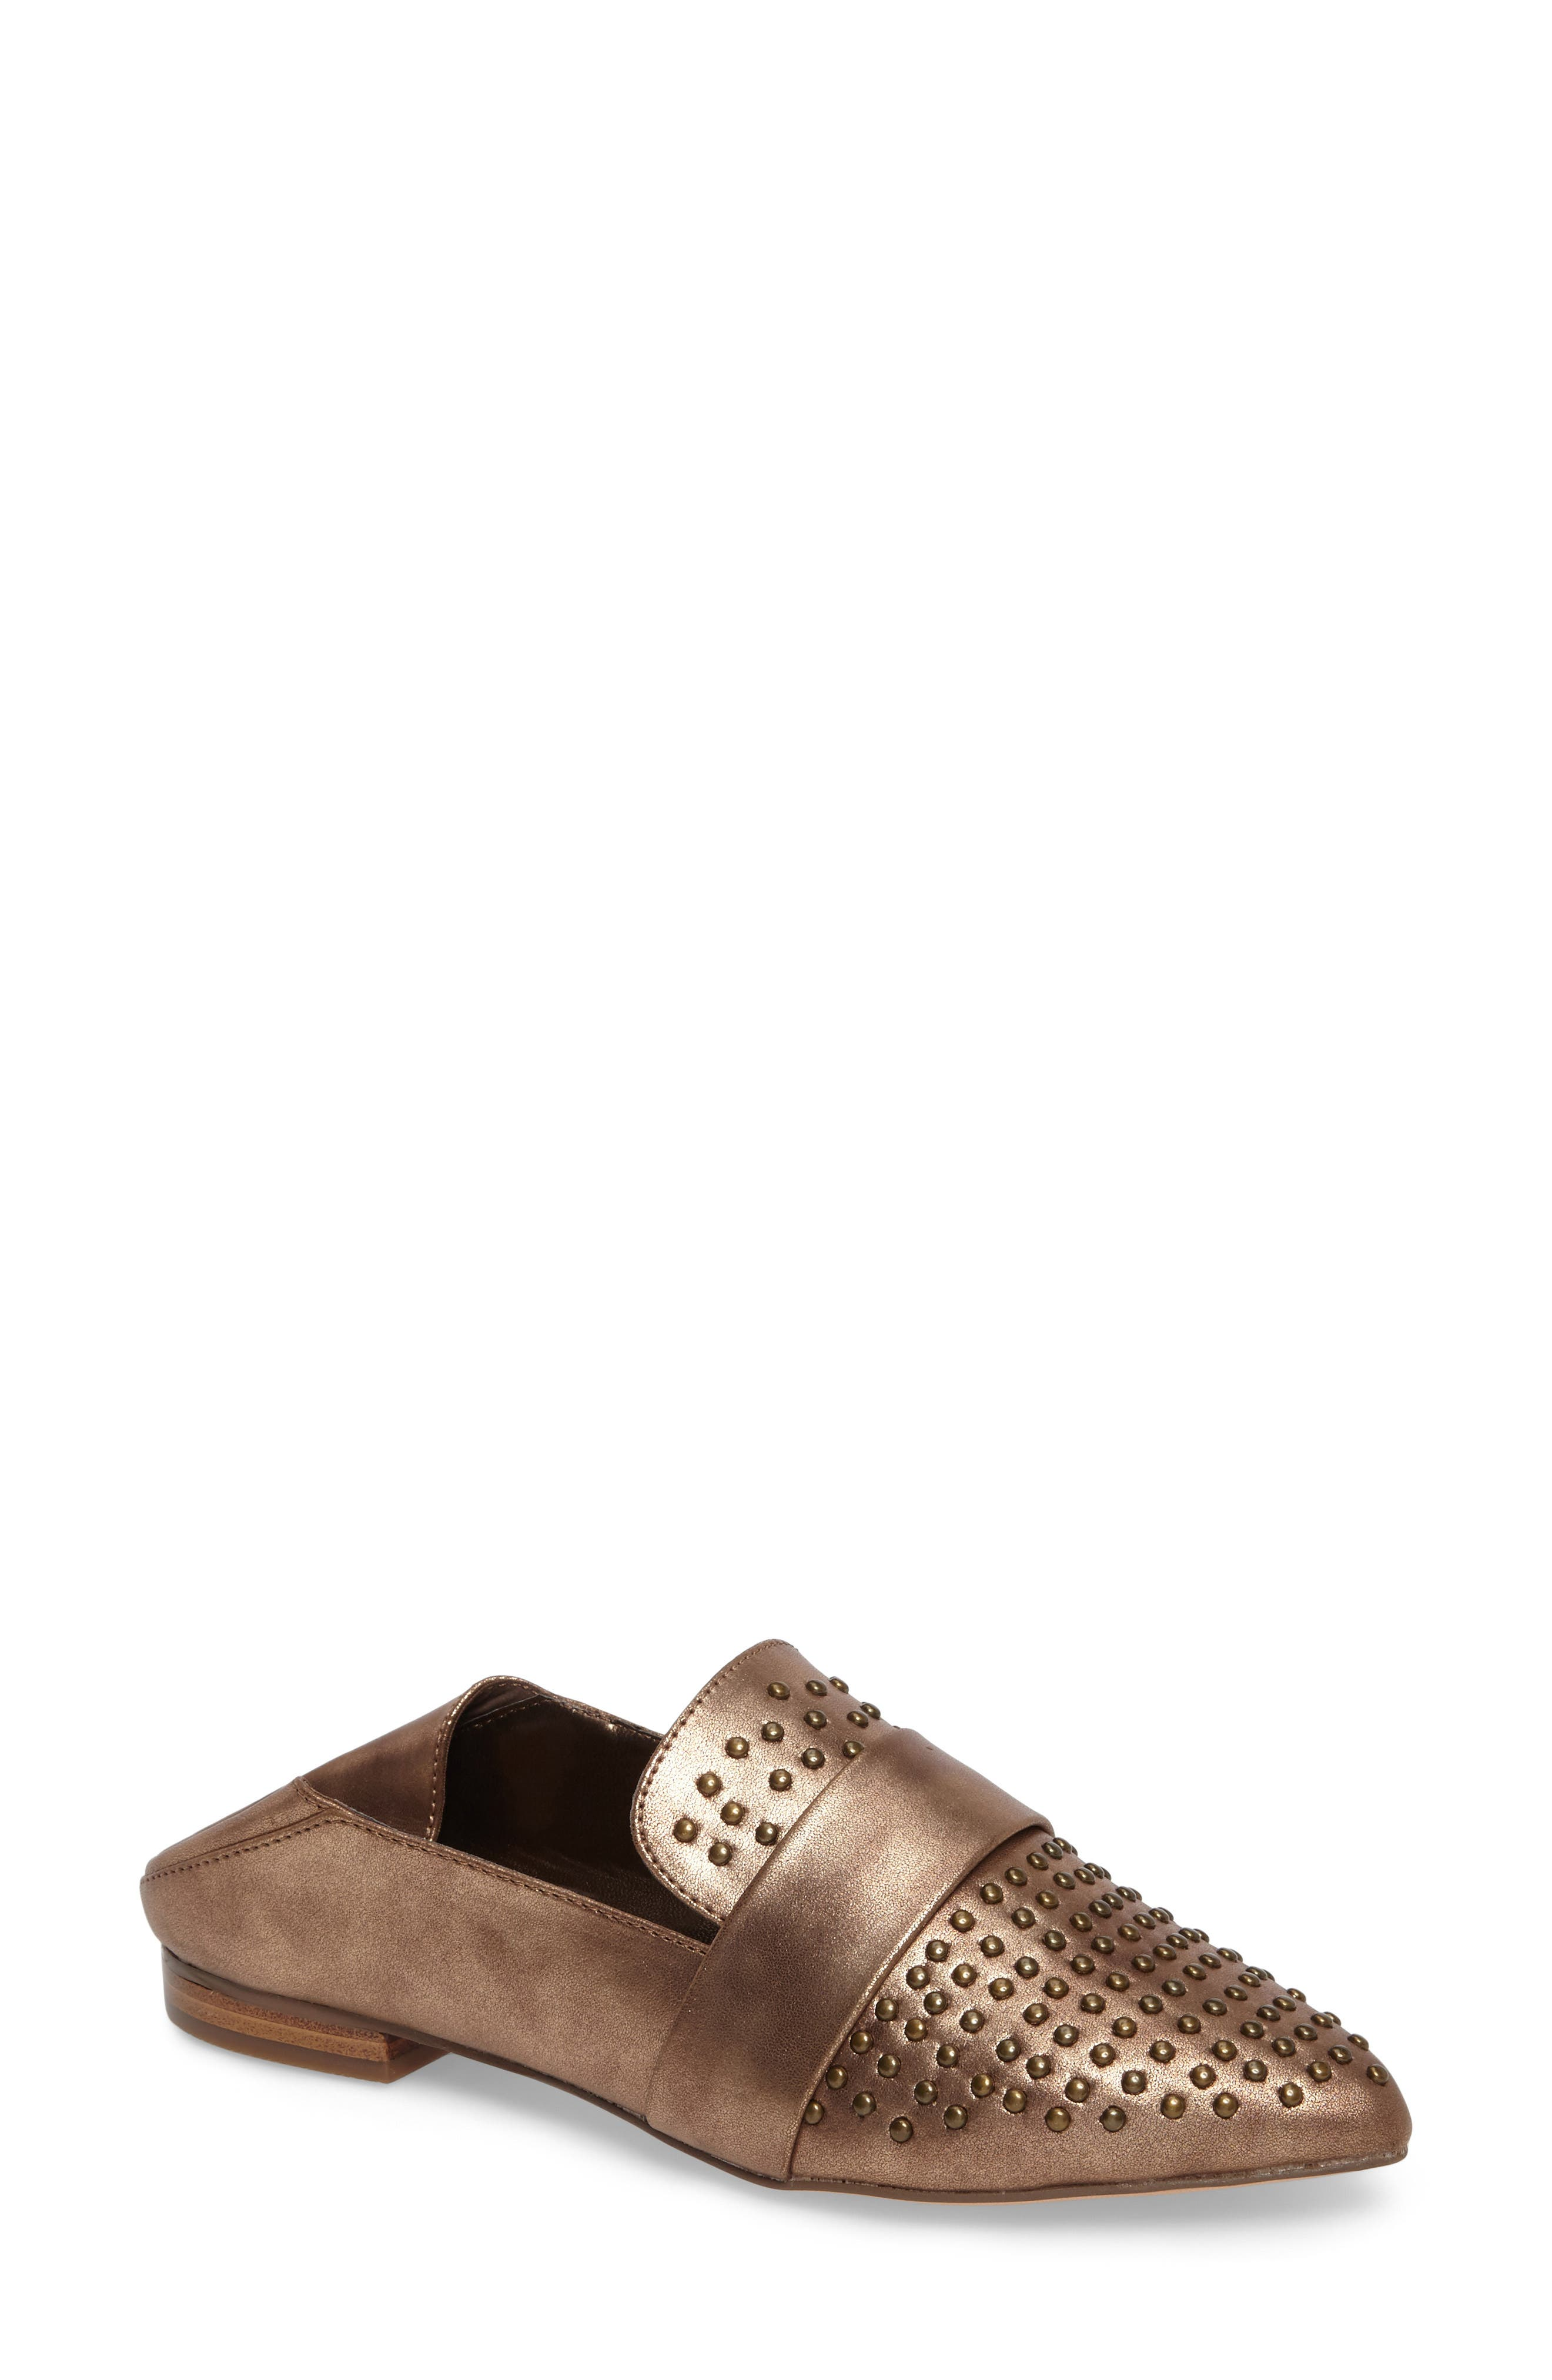 Alternate Image 1 Selected - Coconuts by Matisse Felix Convertible Loafer (Women)